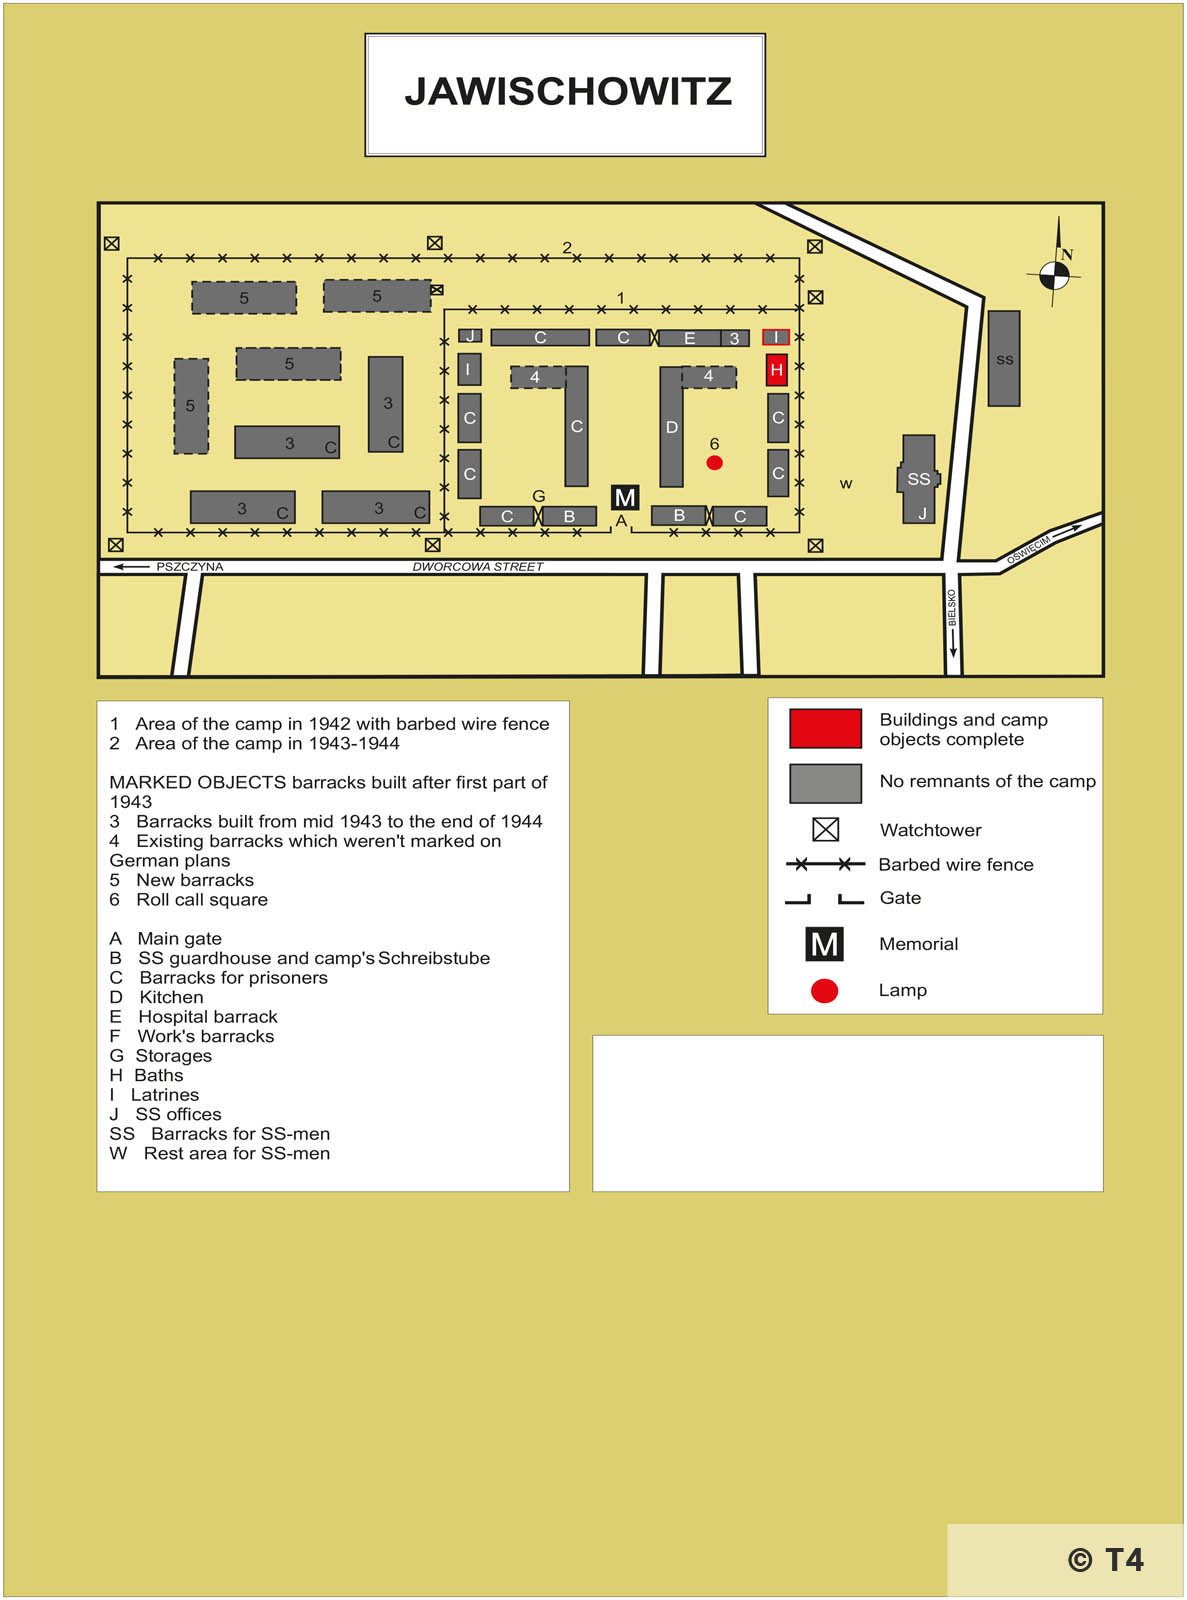 Map of Jawischowitz sub camp. T4